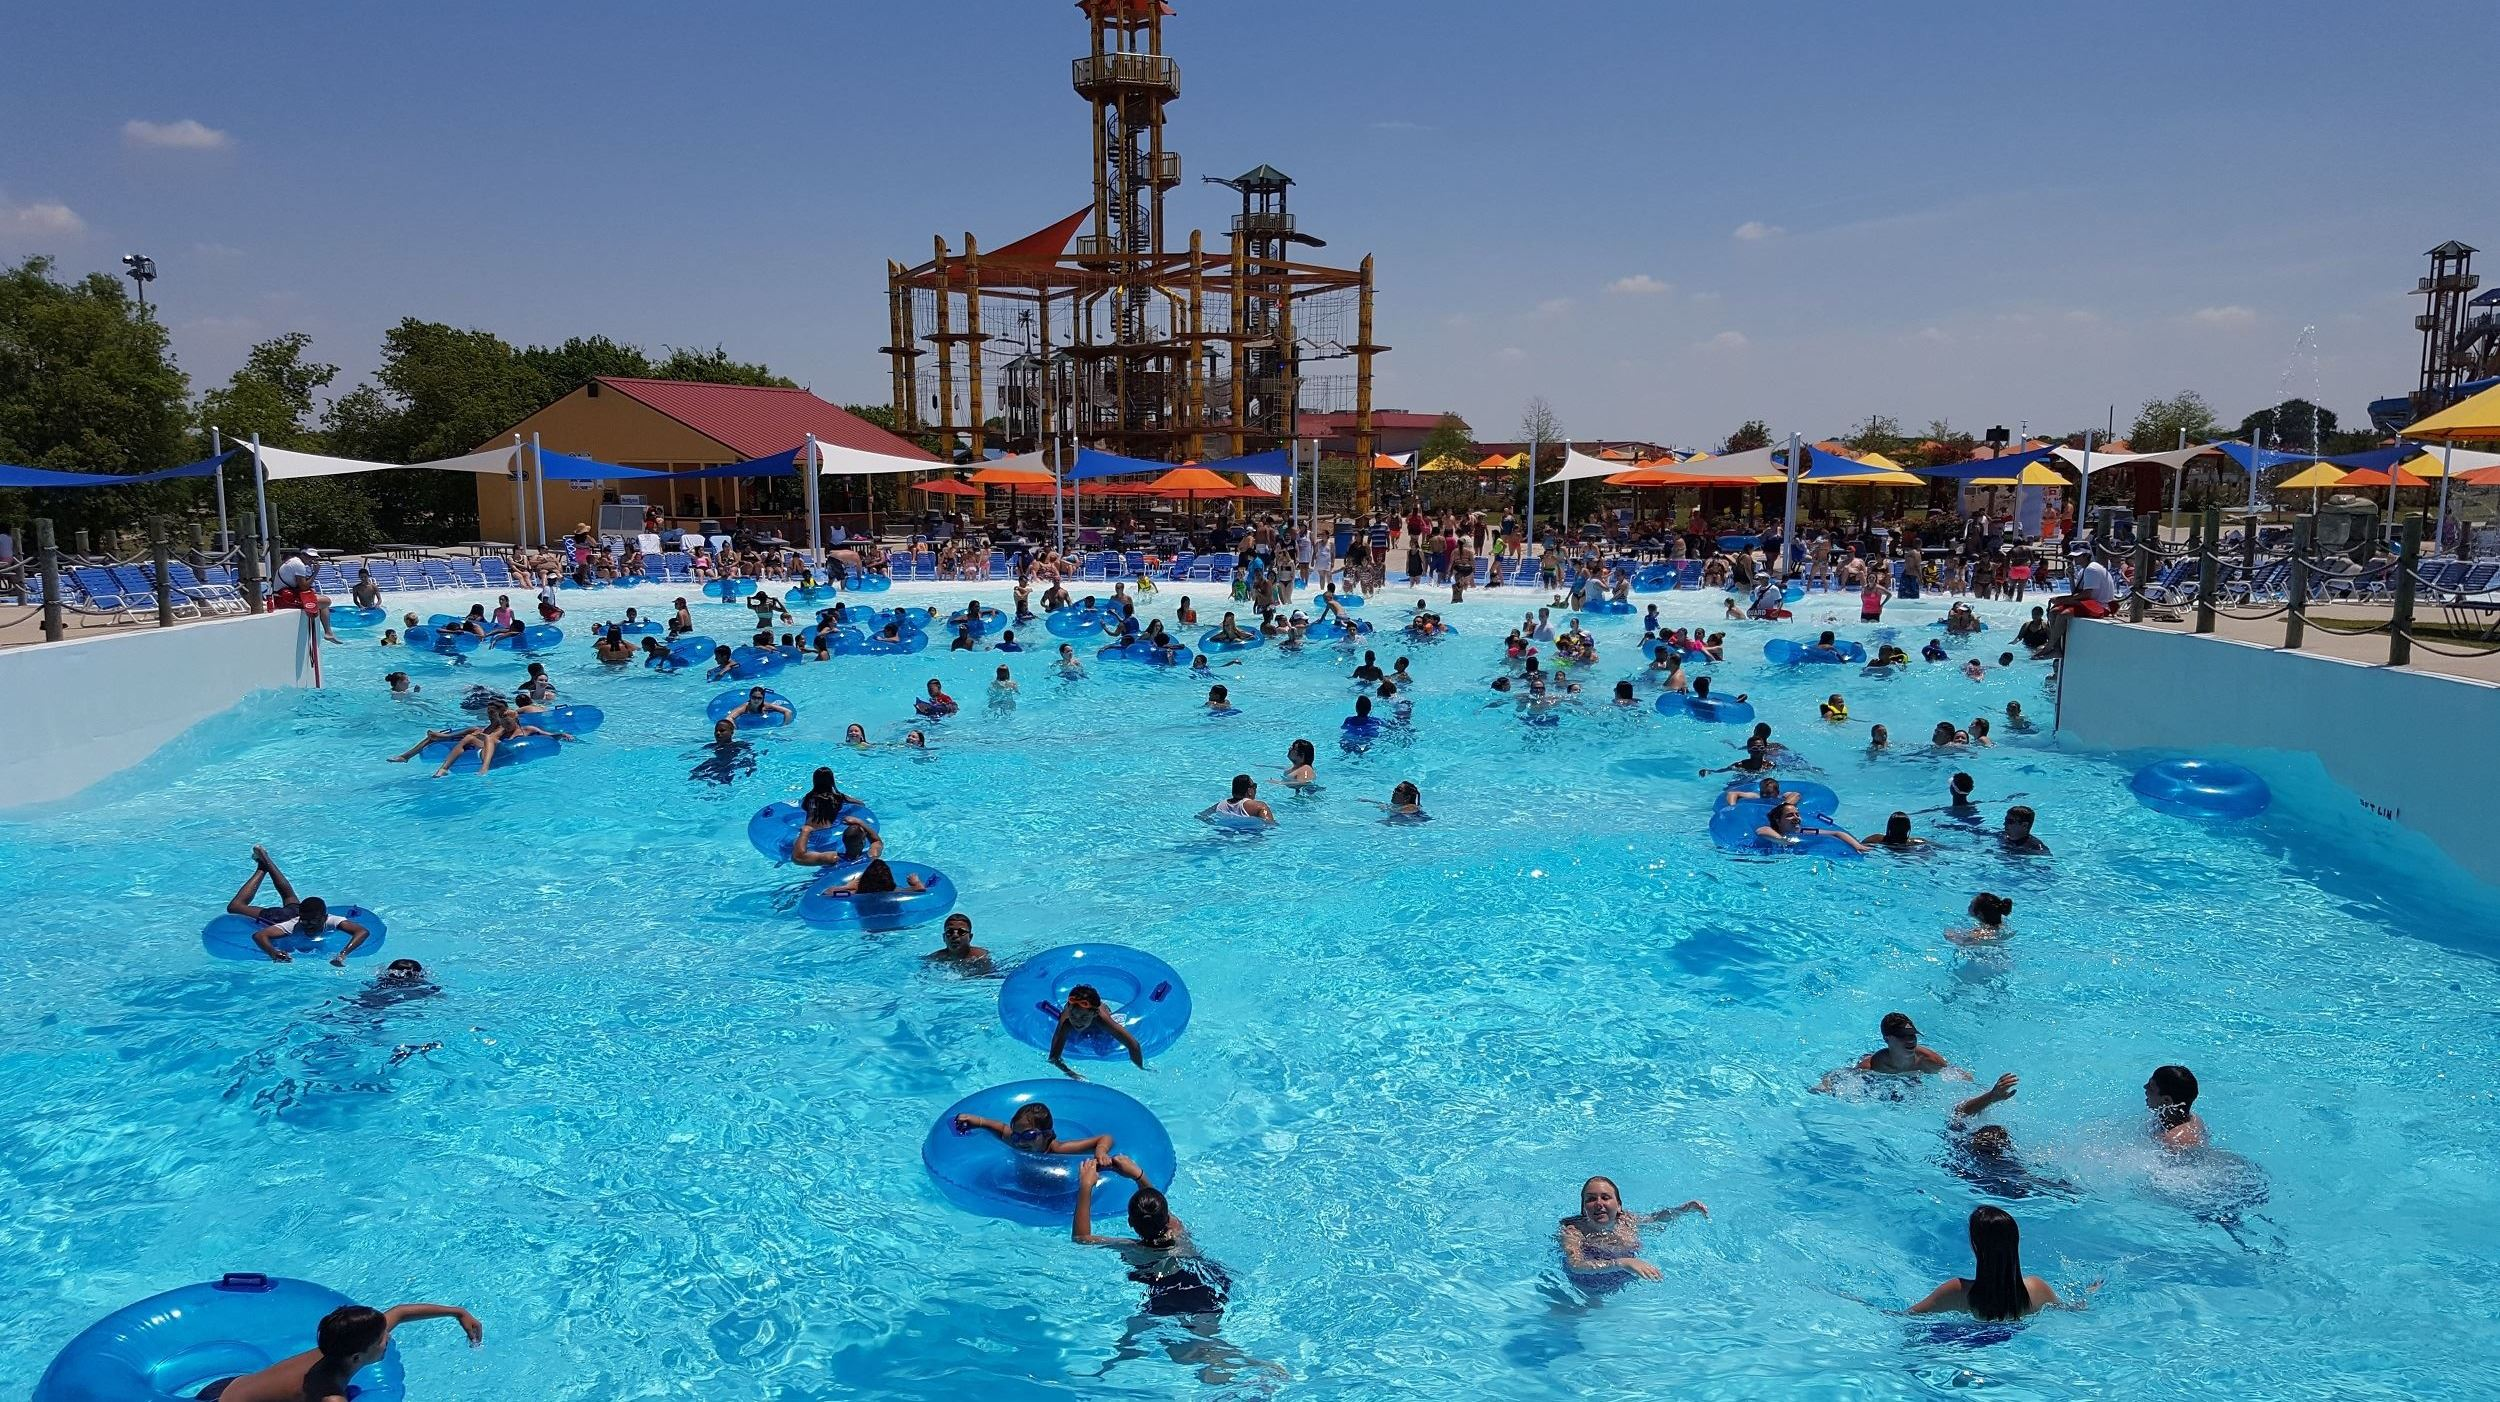 a wave pool at a waterpark